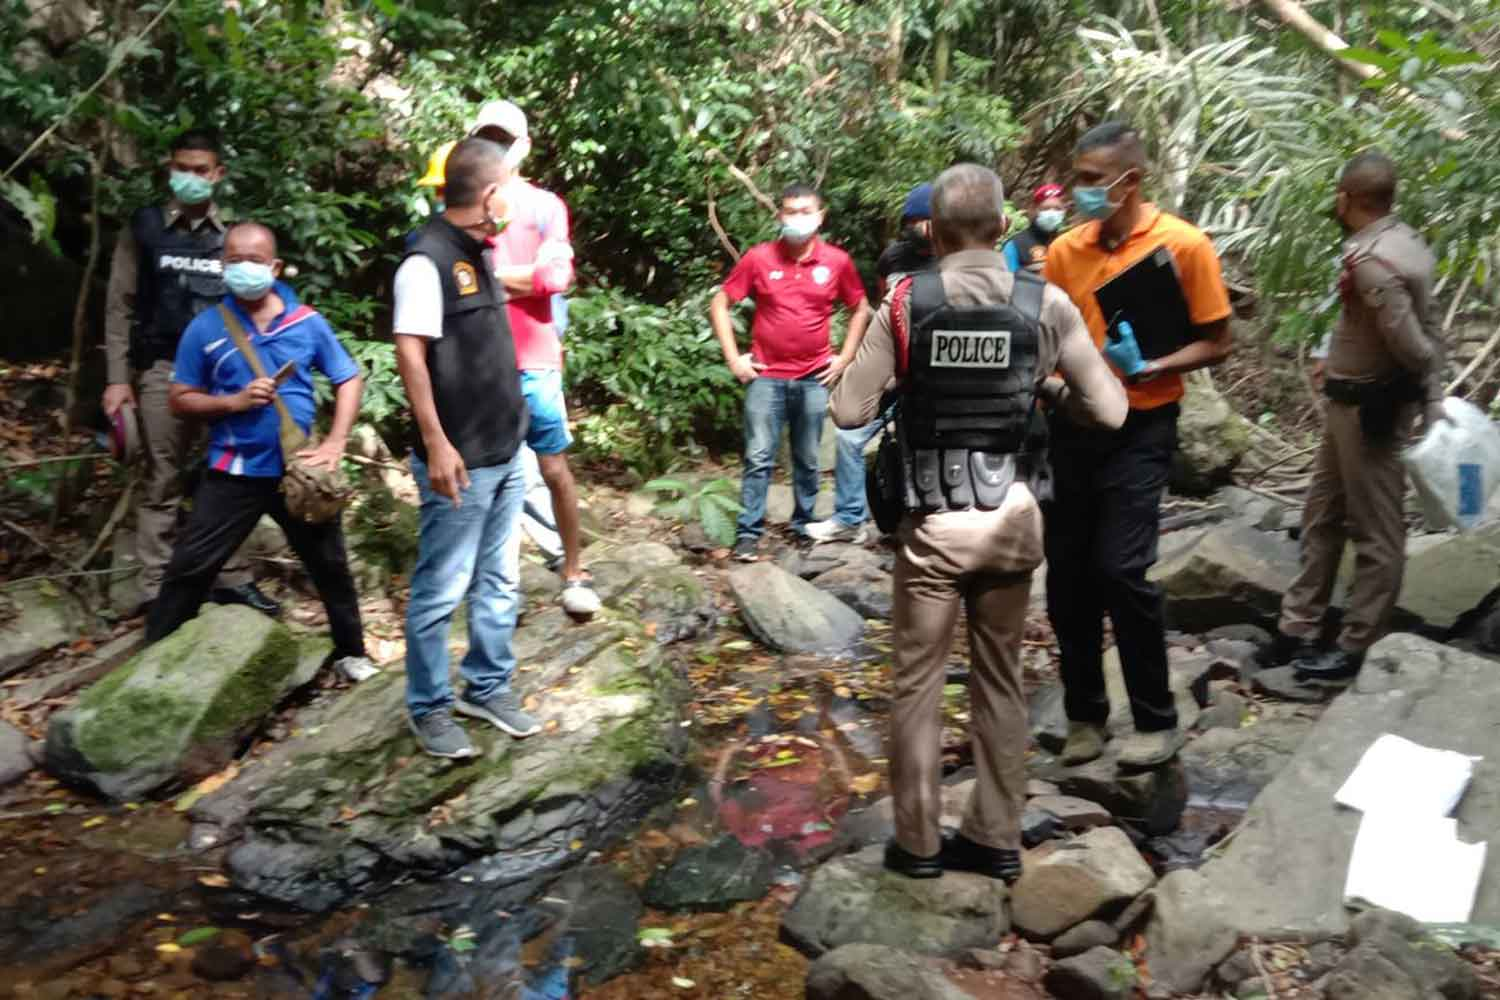 Swiss Woman Found Allegedly Raped and Murdered in Phuket